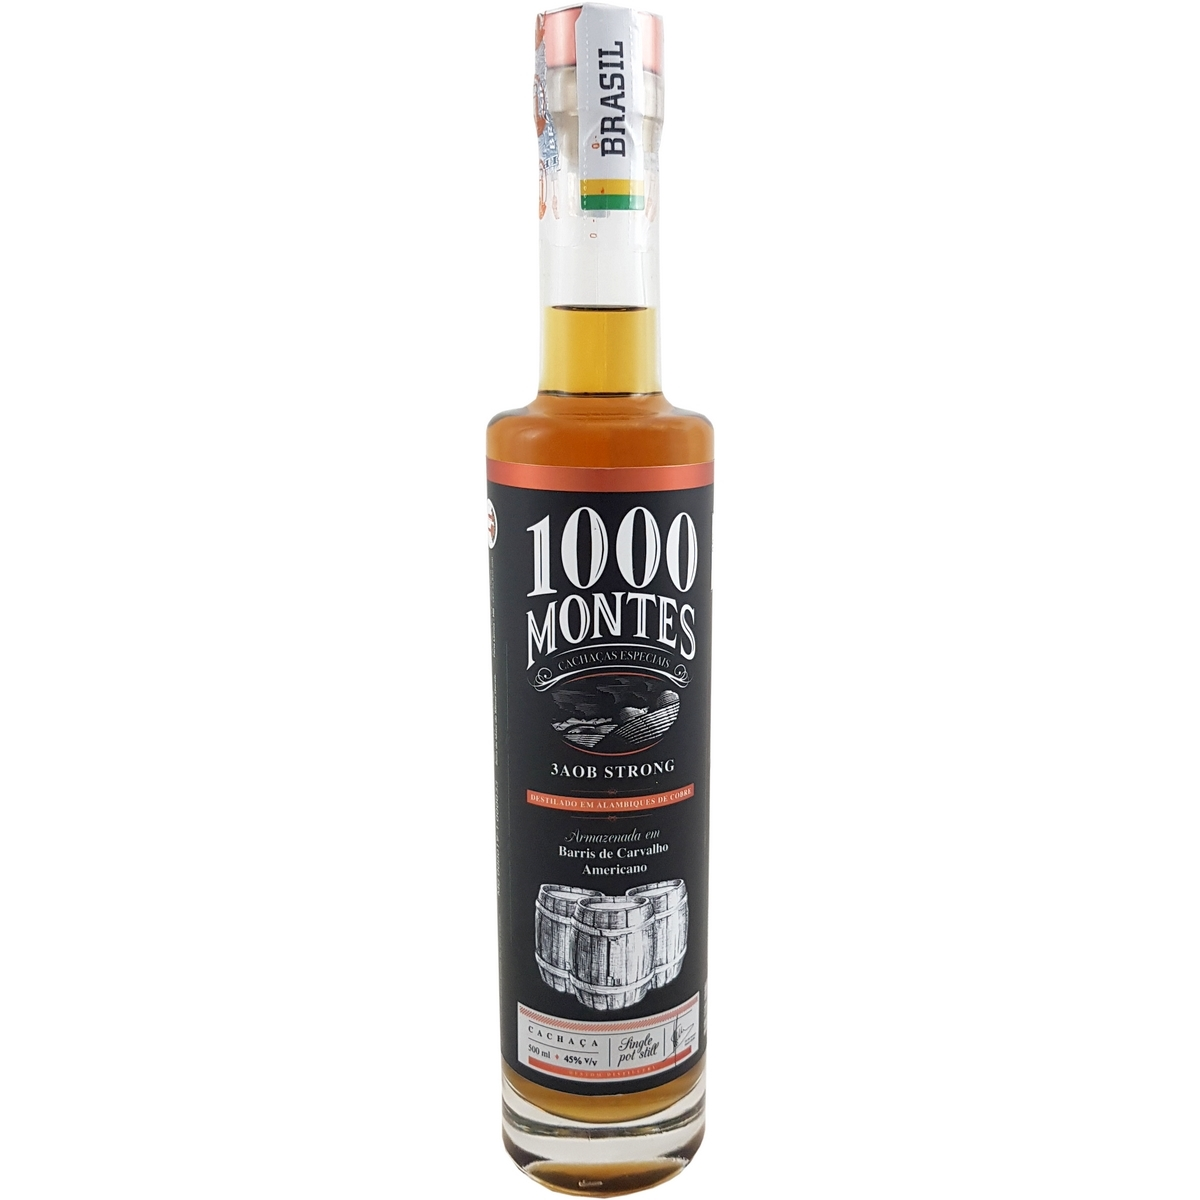 Cachaça 1000 Montes 3AOB Strong 500ml